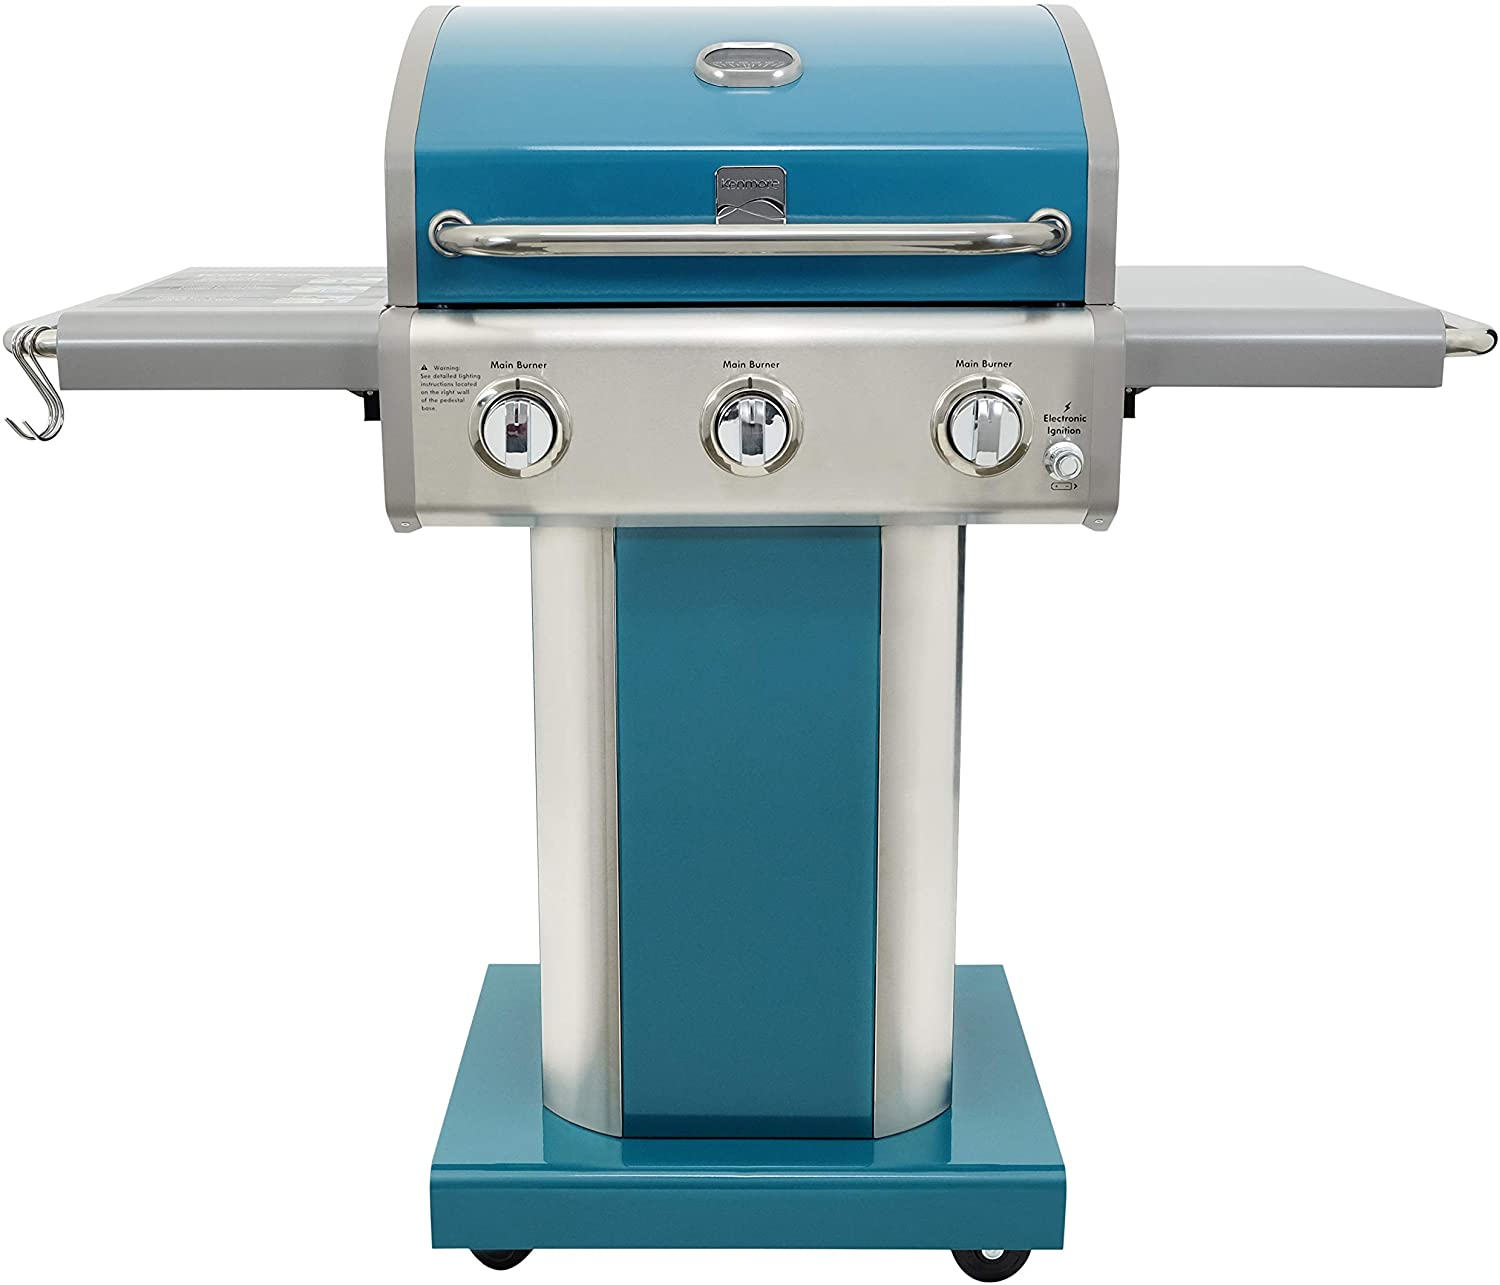 Kenmore Burner Outdoor Patio Gas BBQ Propane Grill, Teal 1 ...